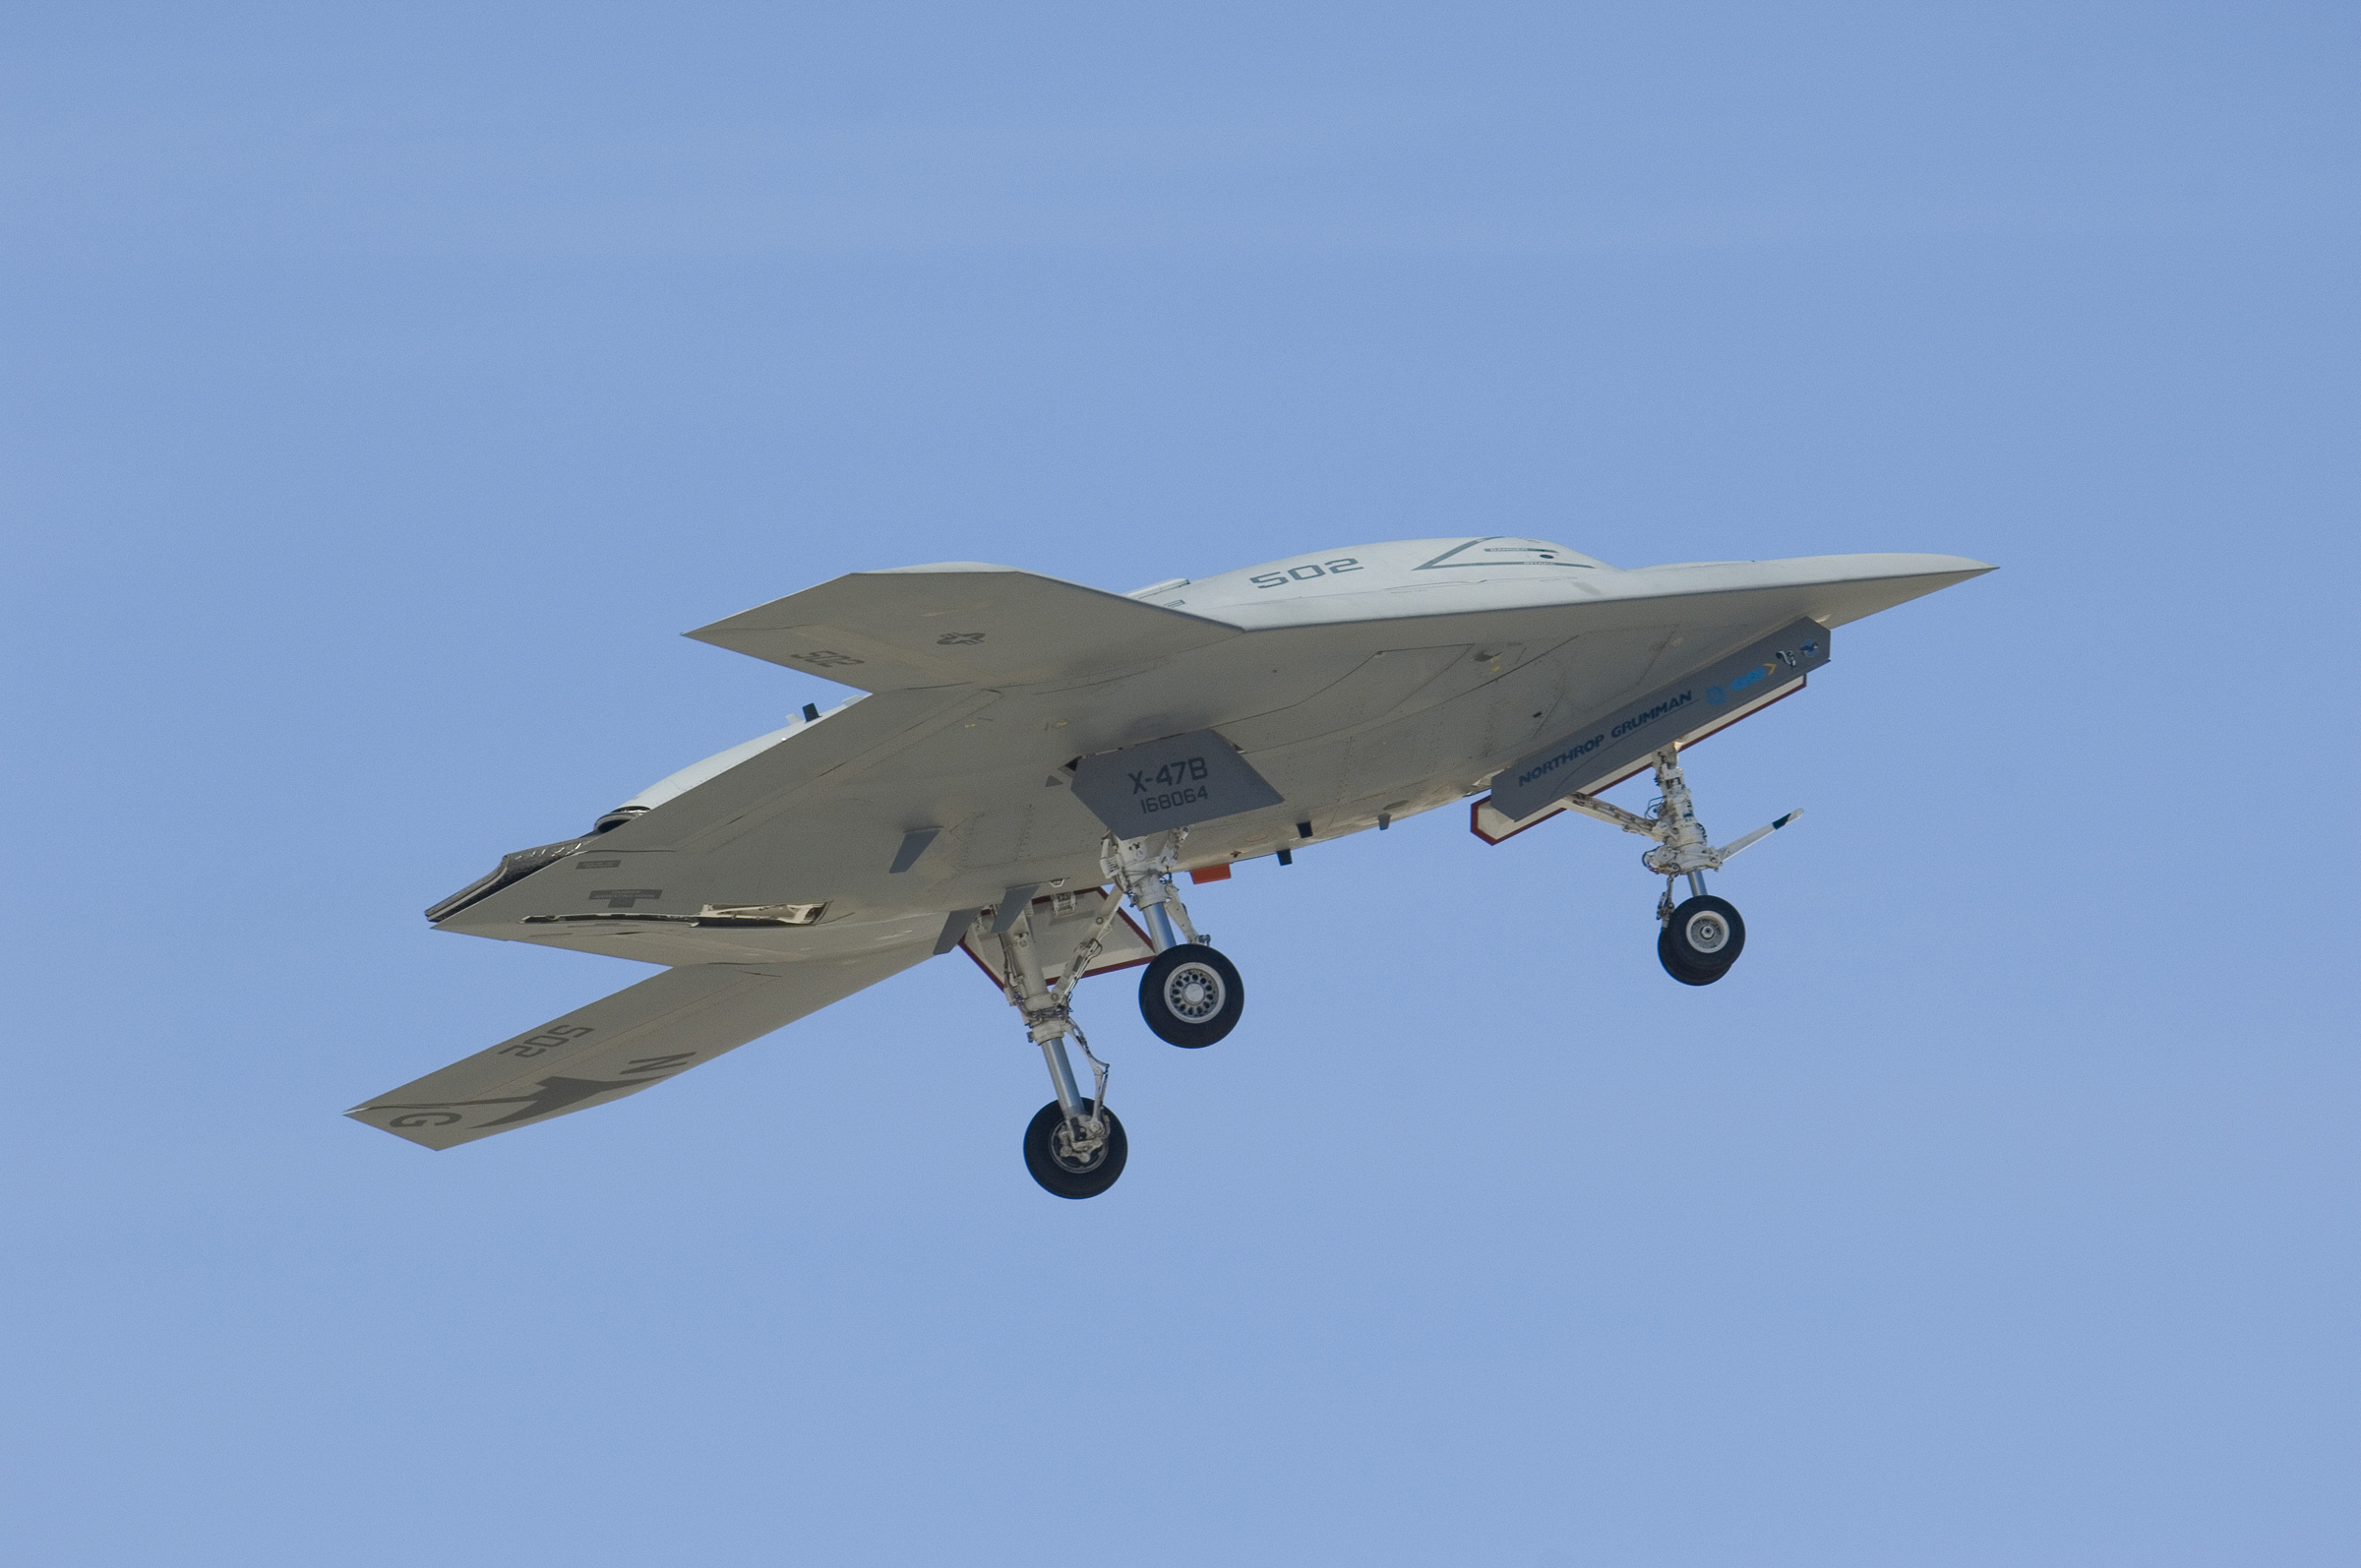 X-47B AV-2 in the air